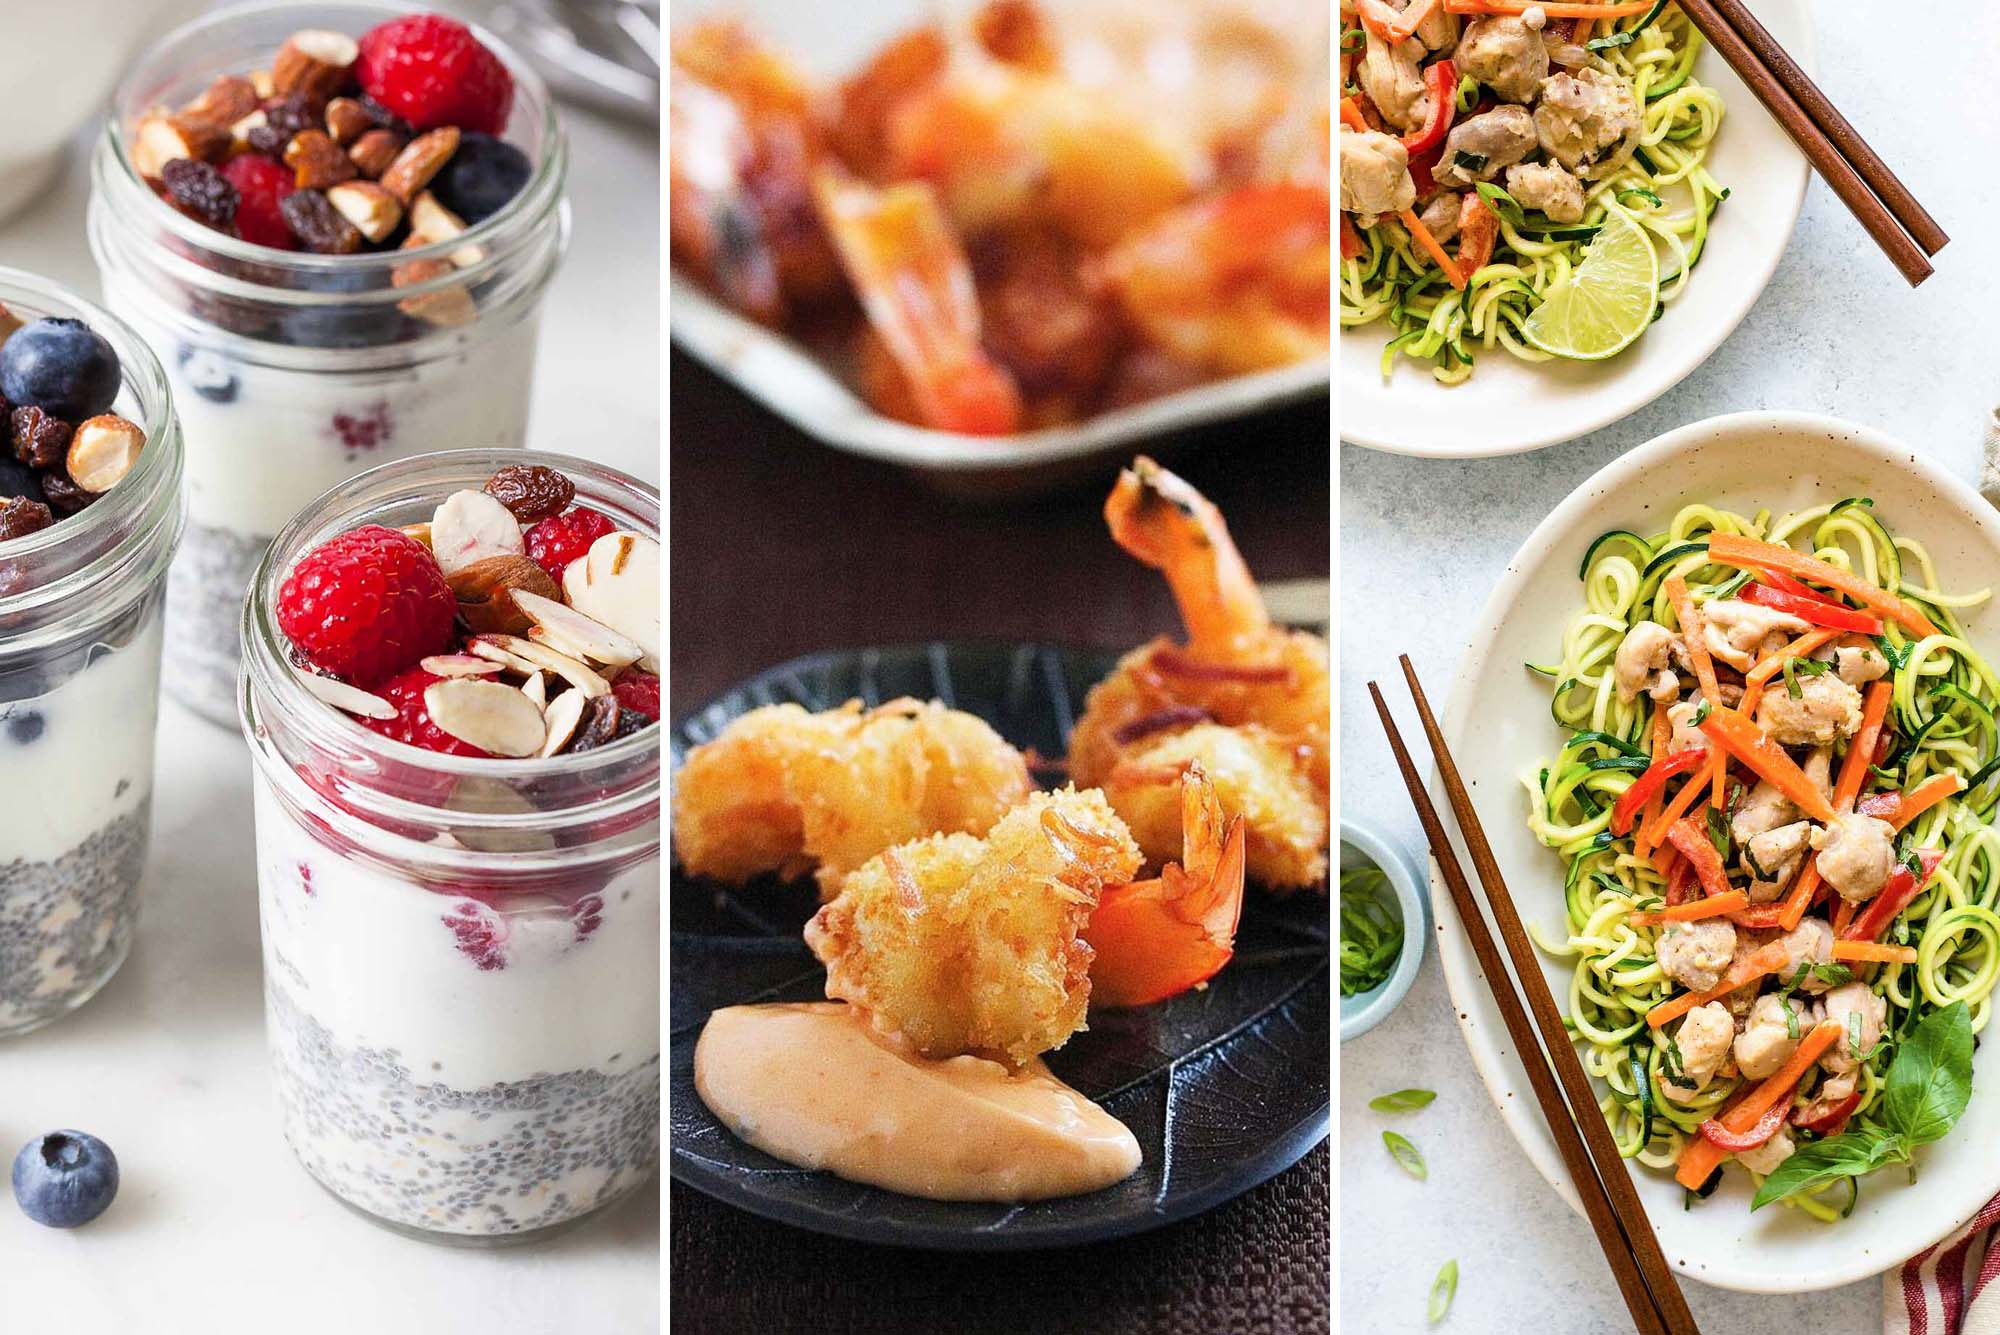 Three images side by side. On the right are three mason jars of Grab-and-Go Oatmeal Chia Cups topped with berries and sliced almonds. The center photo are Coconut Shrimp with Sweet Chili Mayo. The image on the left are two plates of Quick Green Curry Chicken with Zucchini Noodles.